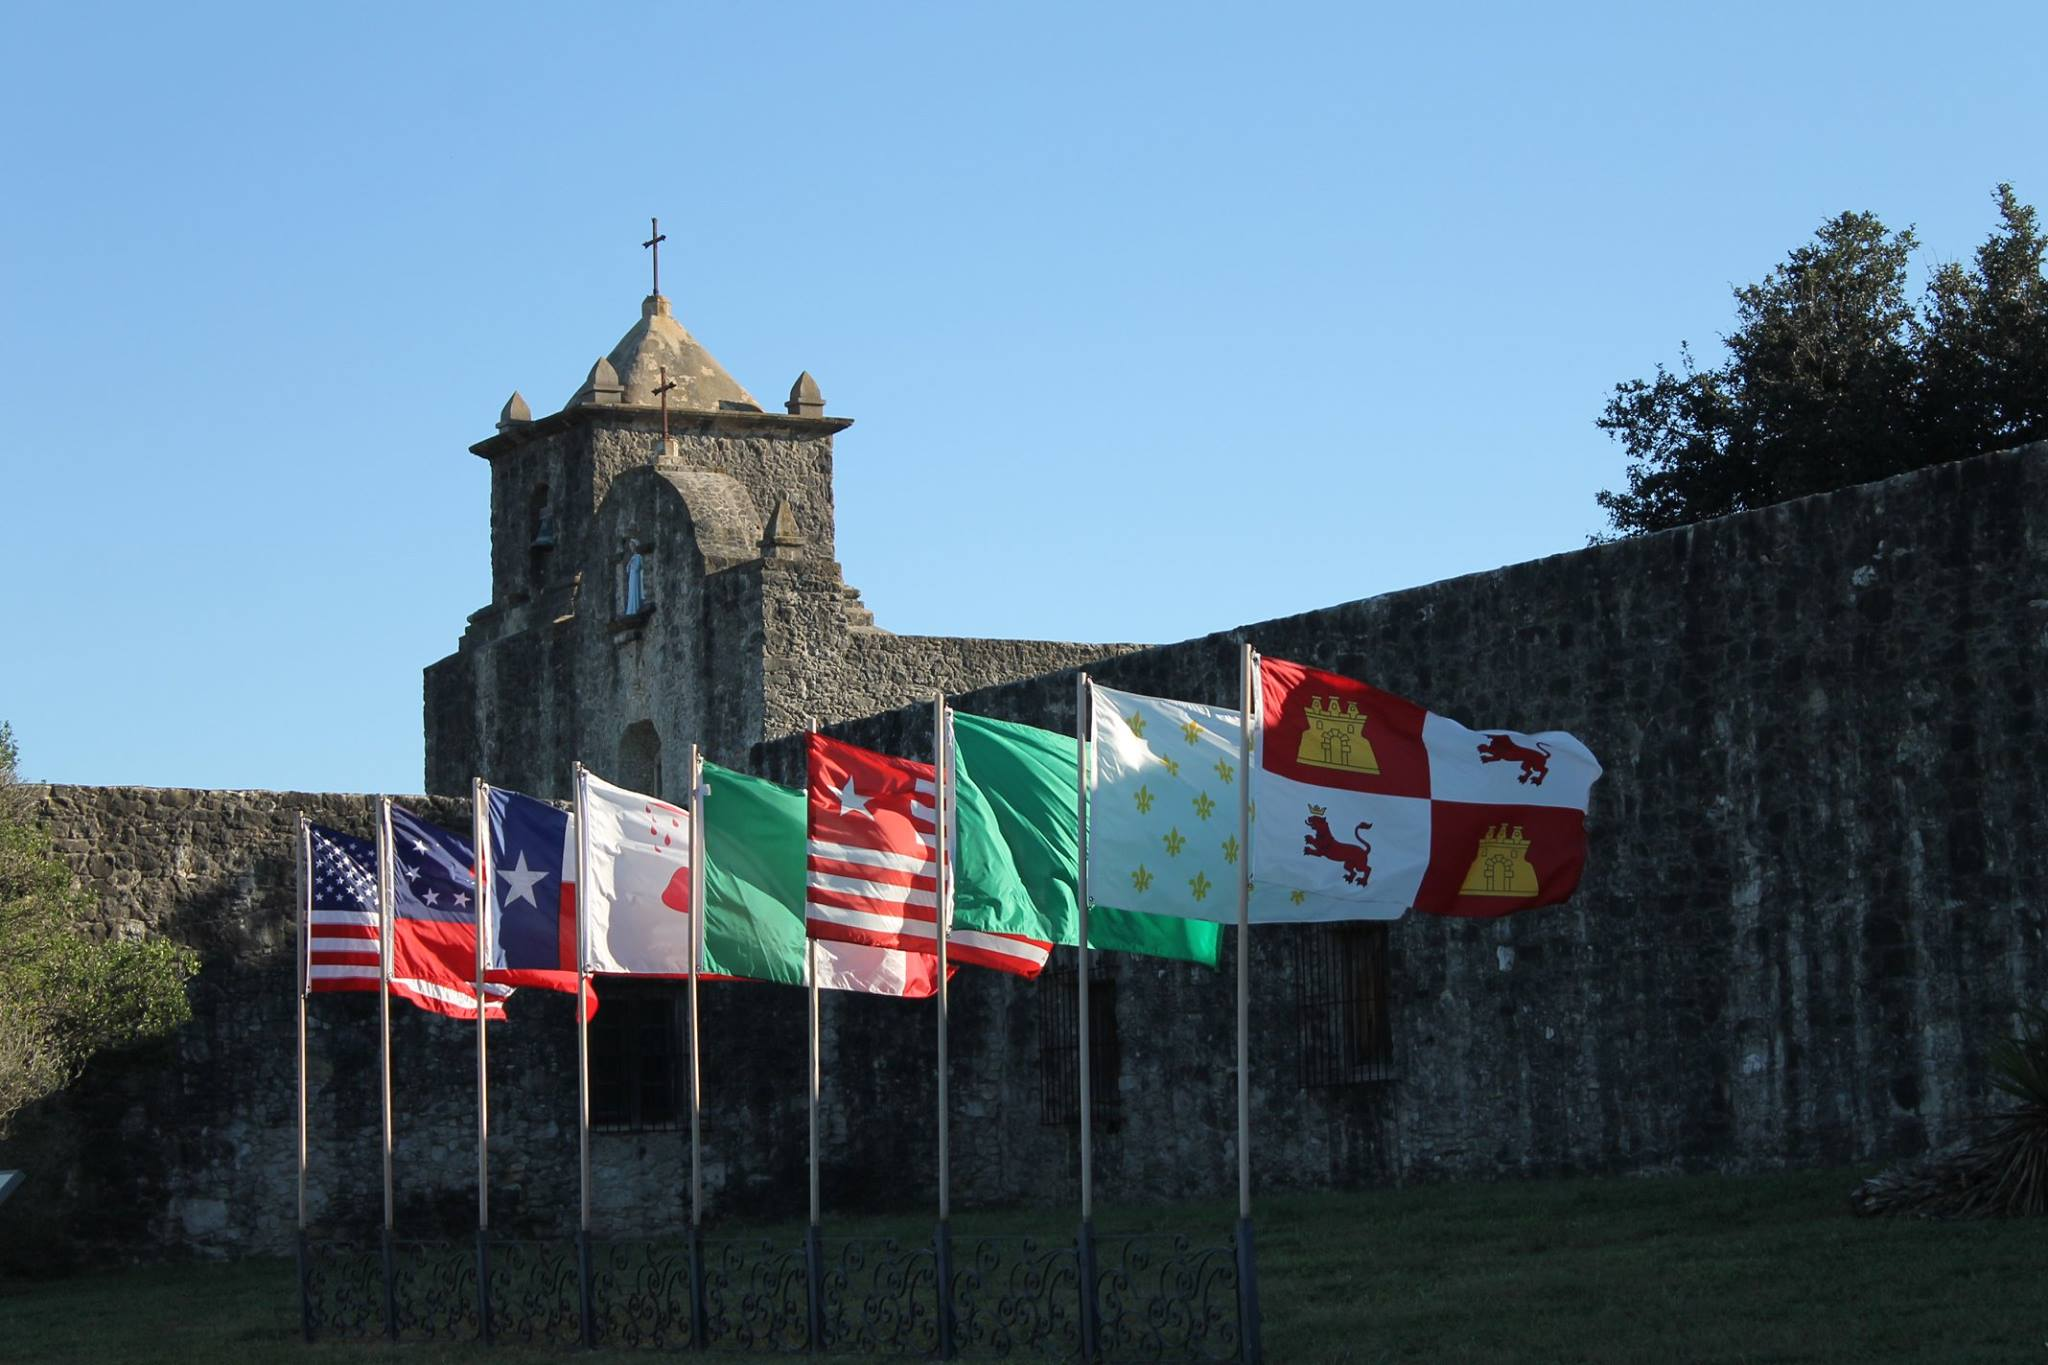 9 Flags Over Goliad Presidio La Bahia